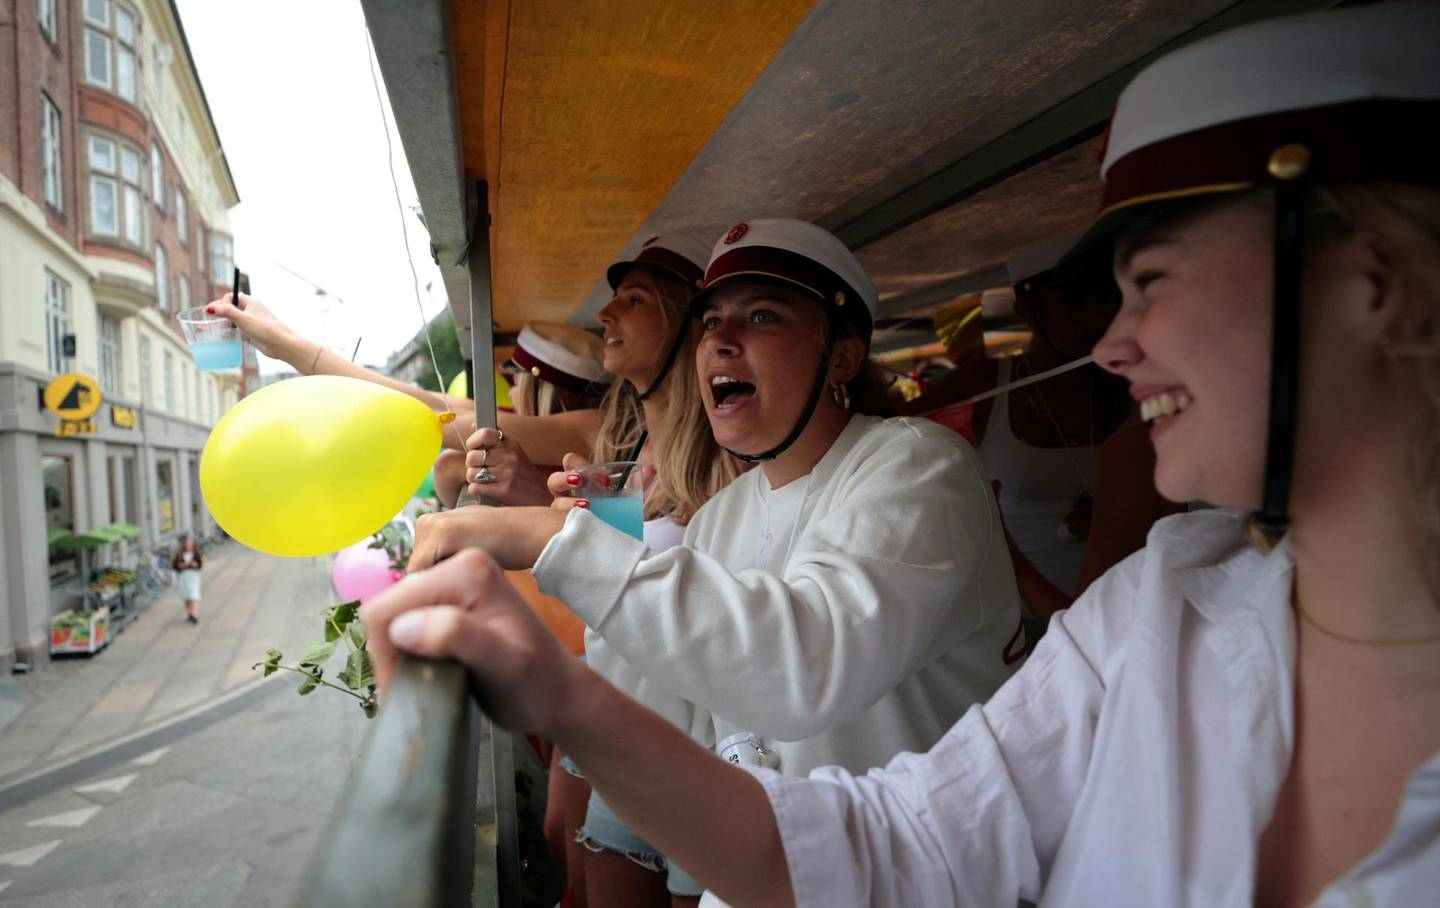 """Danish students celebrate """"Studenterkorsel"""" an event to mark the finishing of high school, as they travel on an open-backed truck through the city, stopping along the route to visit their parents' houses to drink and eat snacks, in Copenhagen, Denmark, June 25, 2021. Picture taken June 25, 2021. REUTERS/Hannah McKay"""